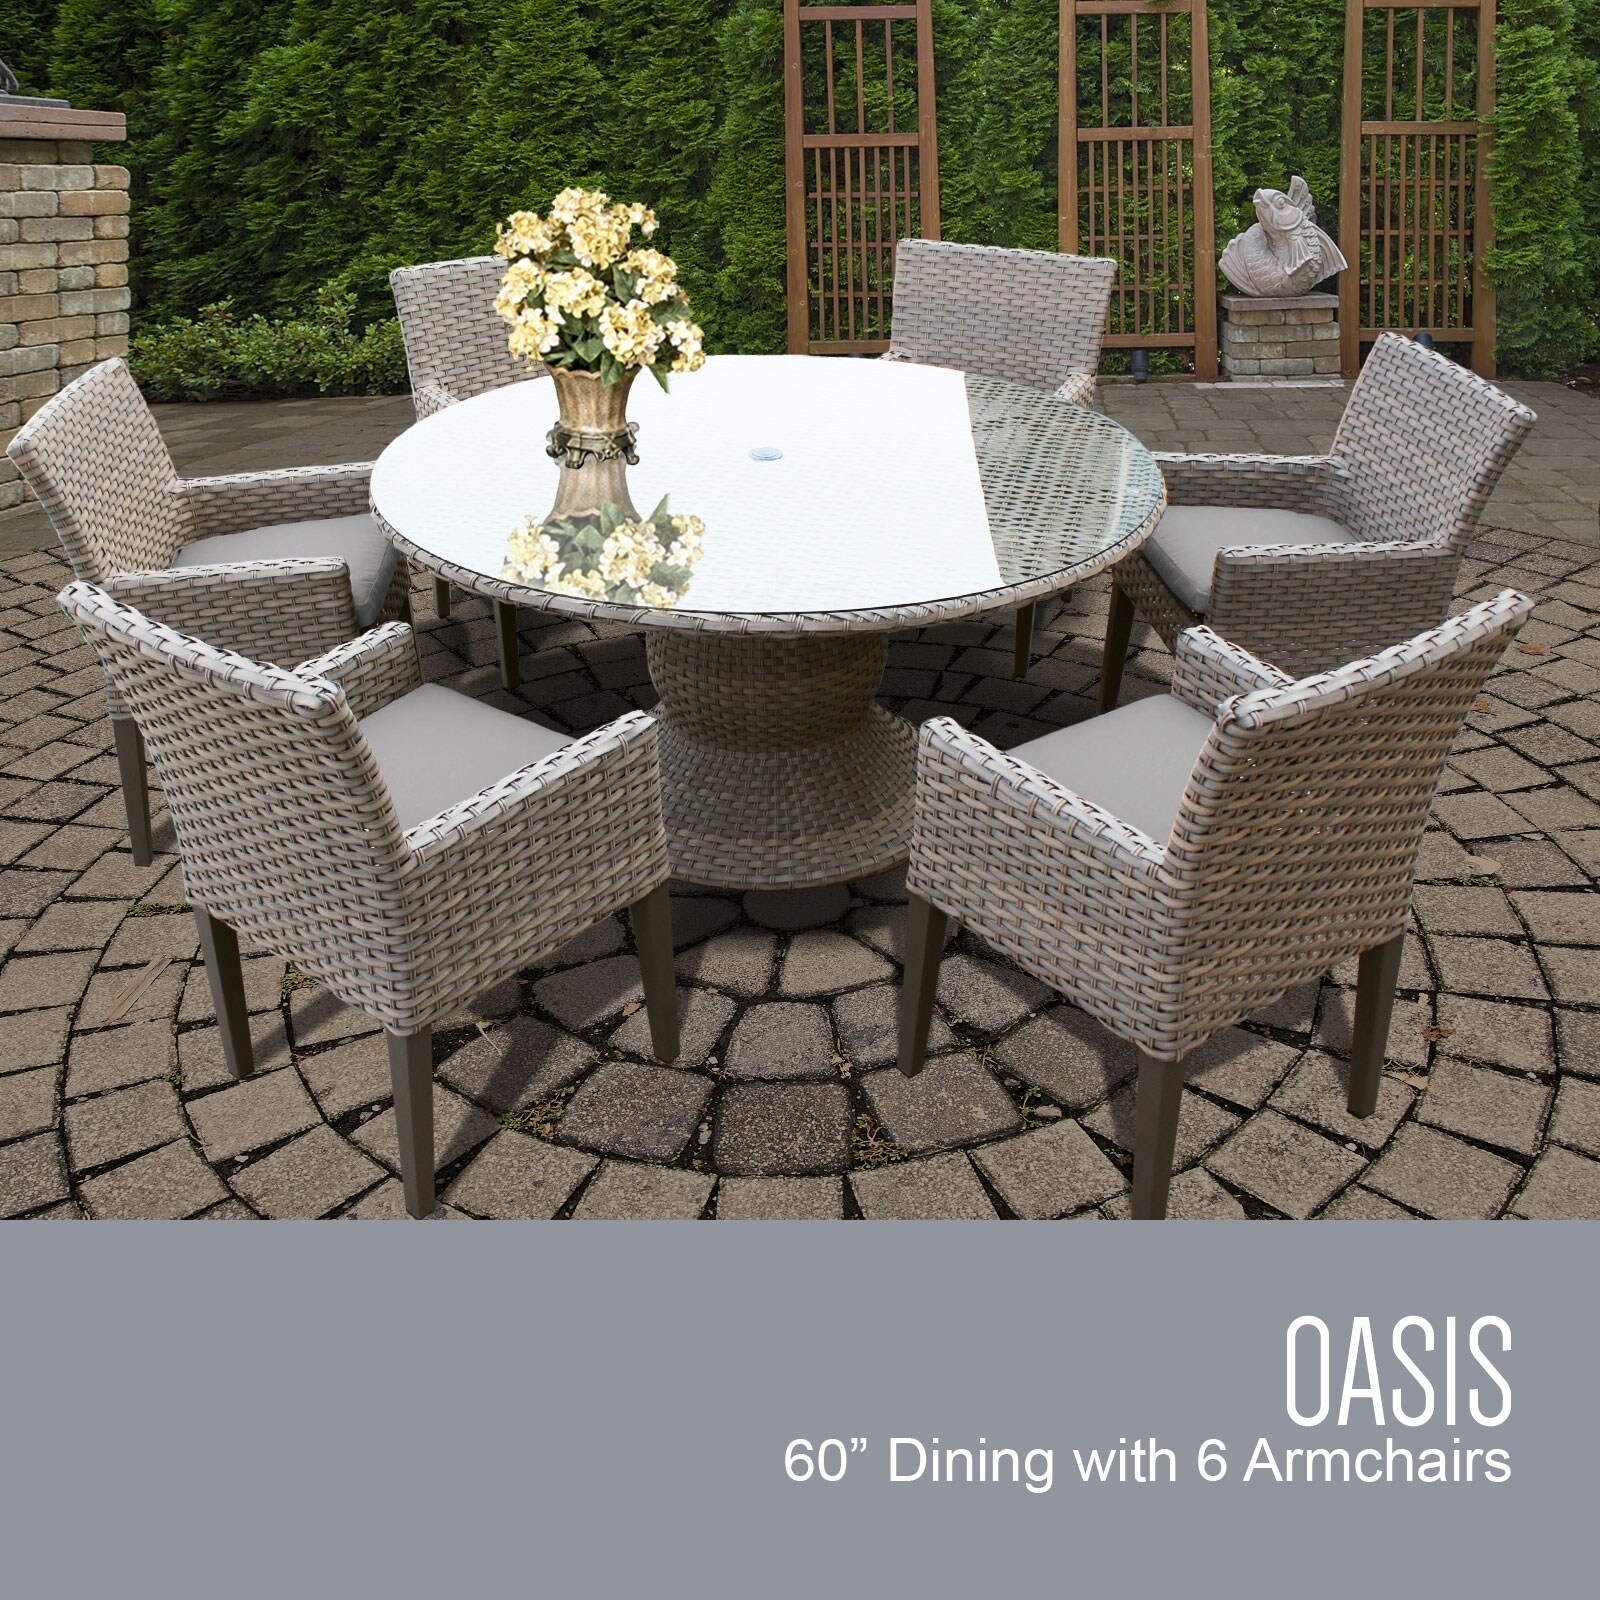 Picture of: Oasis 60 Inch Outdoor Patio Dining Table With 6 Chairs W Arms Overstock 26423915 Standard